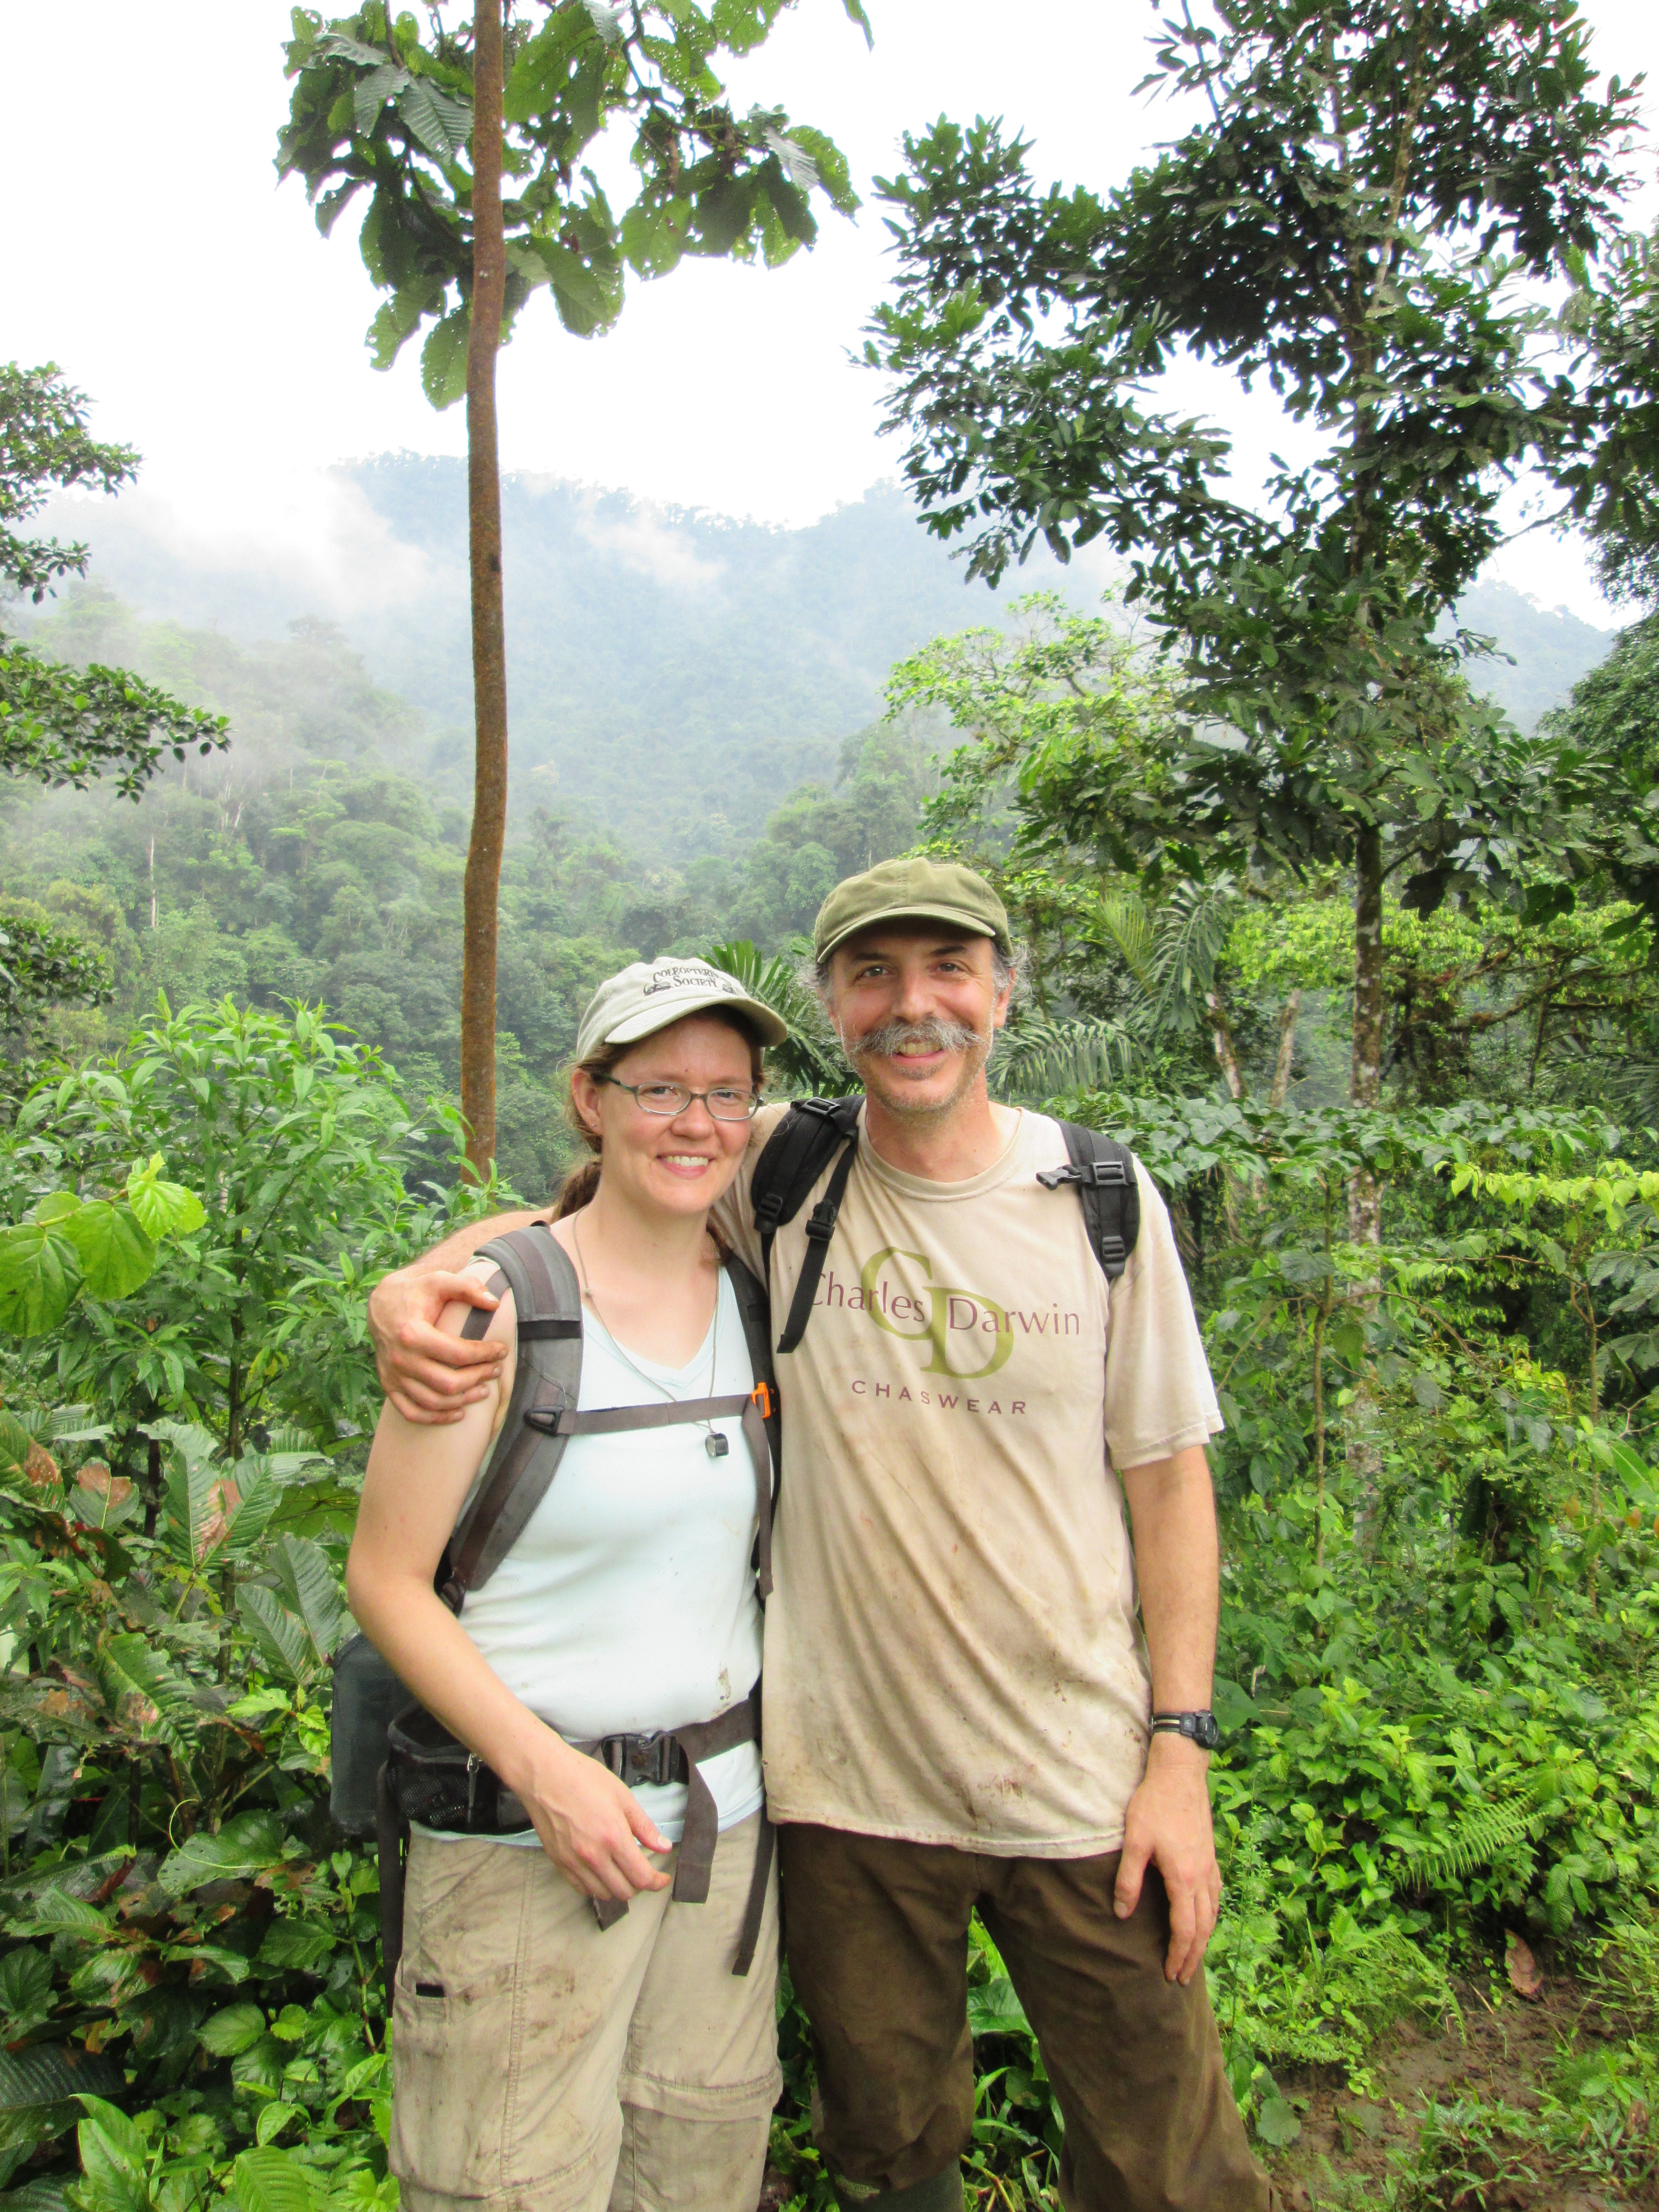 Sarah Smith and Anthony Cognato are photographed in front of dense green foliage and misty hilltops in Ecuador in 2015.